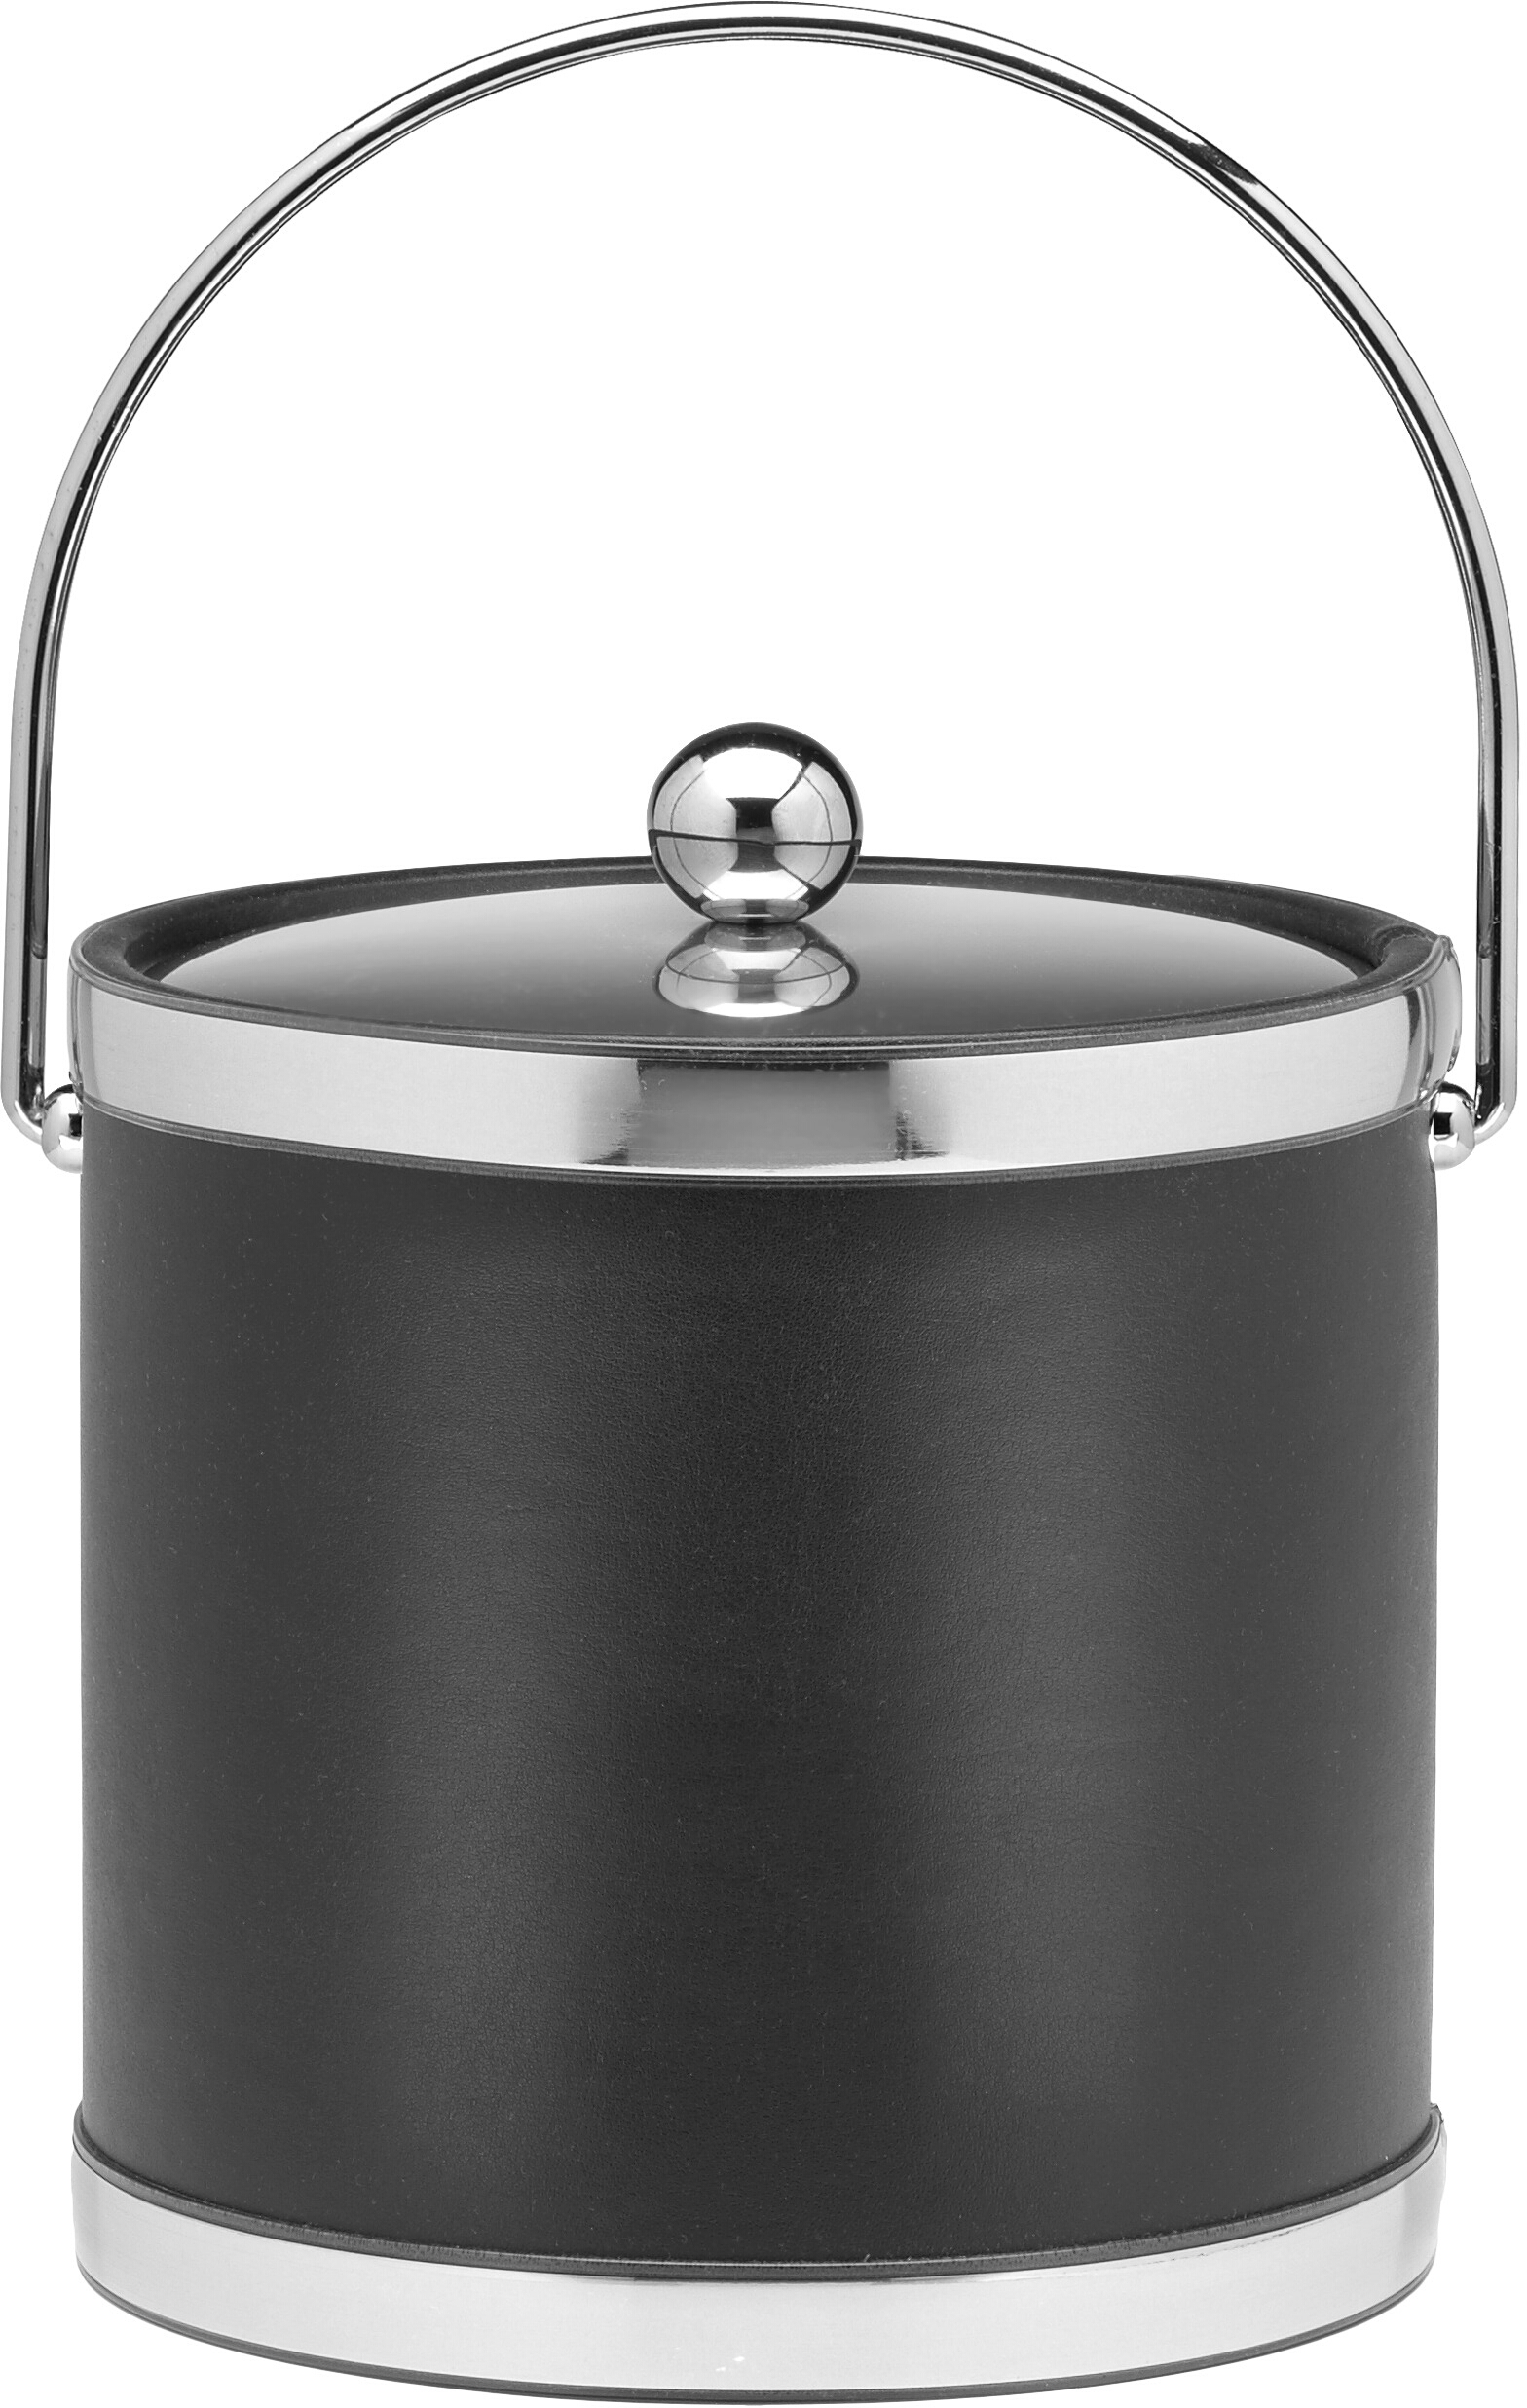 Kraftware Sophisticates Collection Black With Polished Chrome 3 Quart Ice Bucket With Metal Cover, Bands And Bale Handle